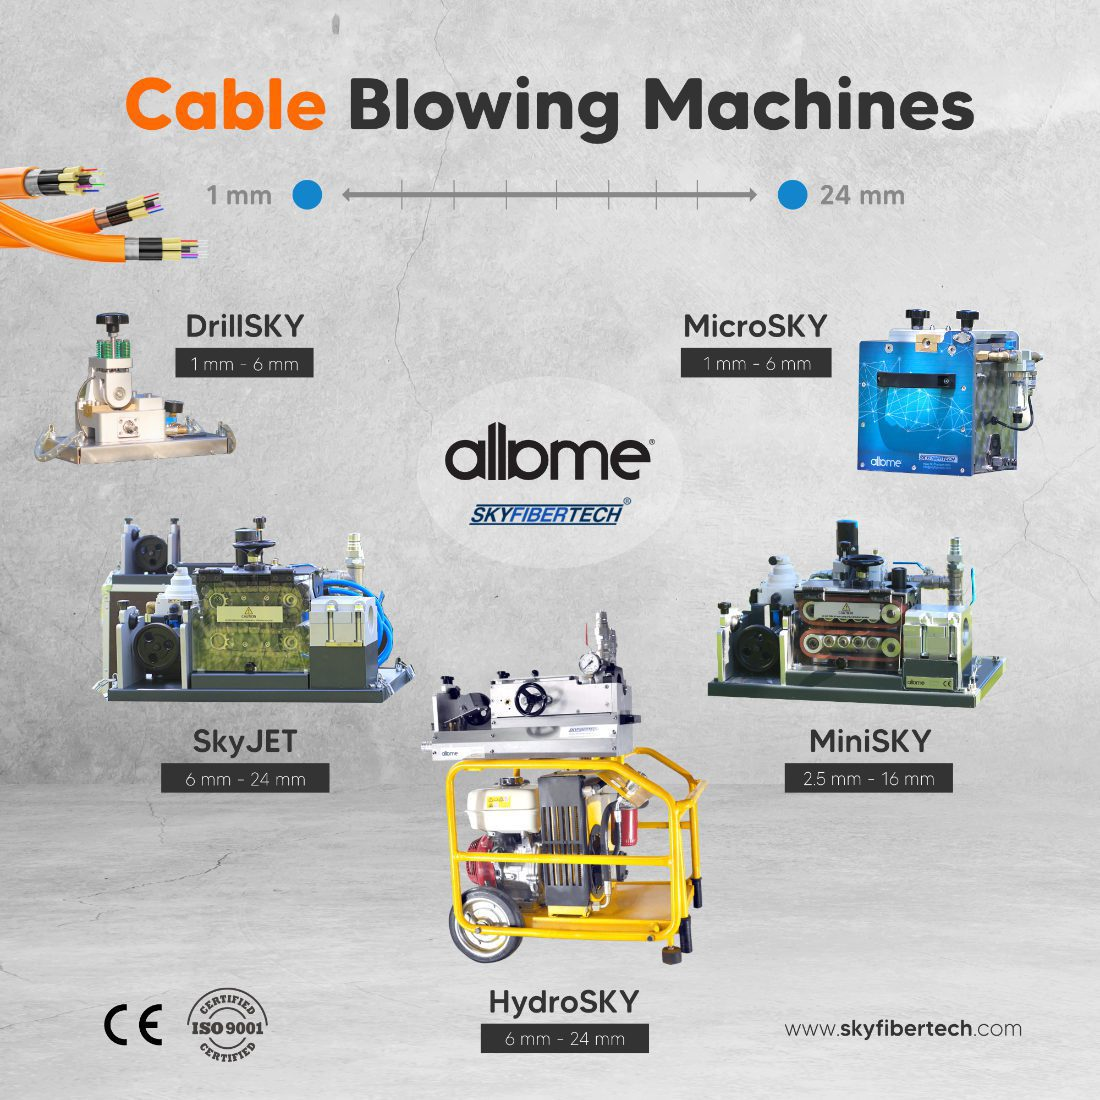 allame cable blowing machines